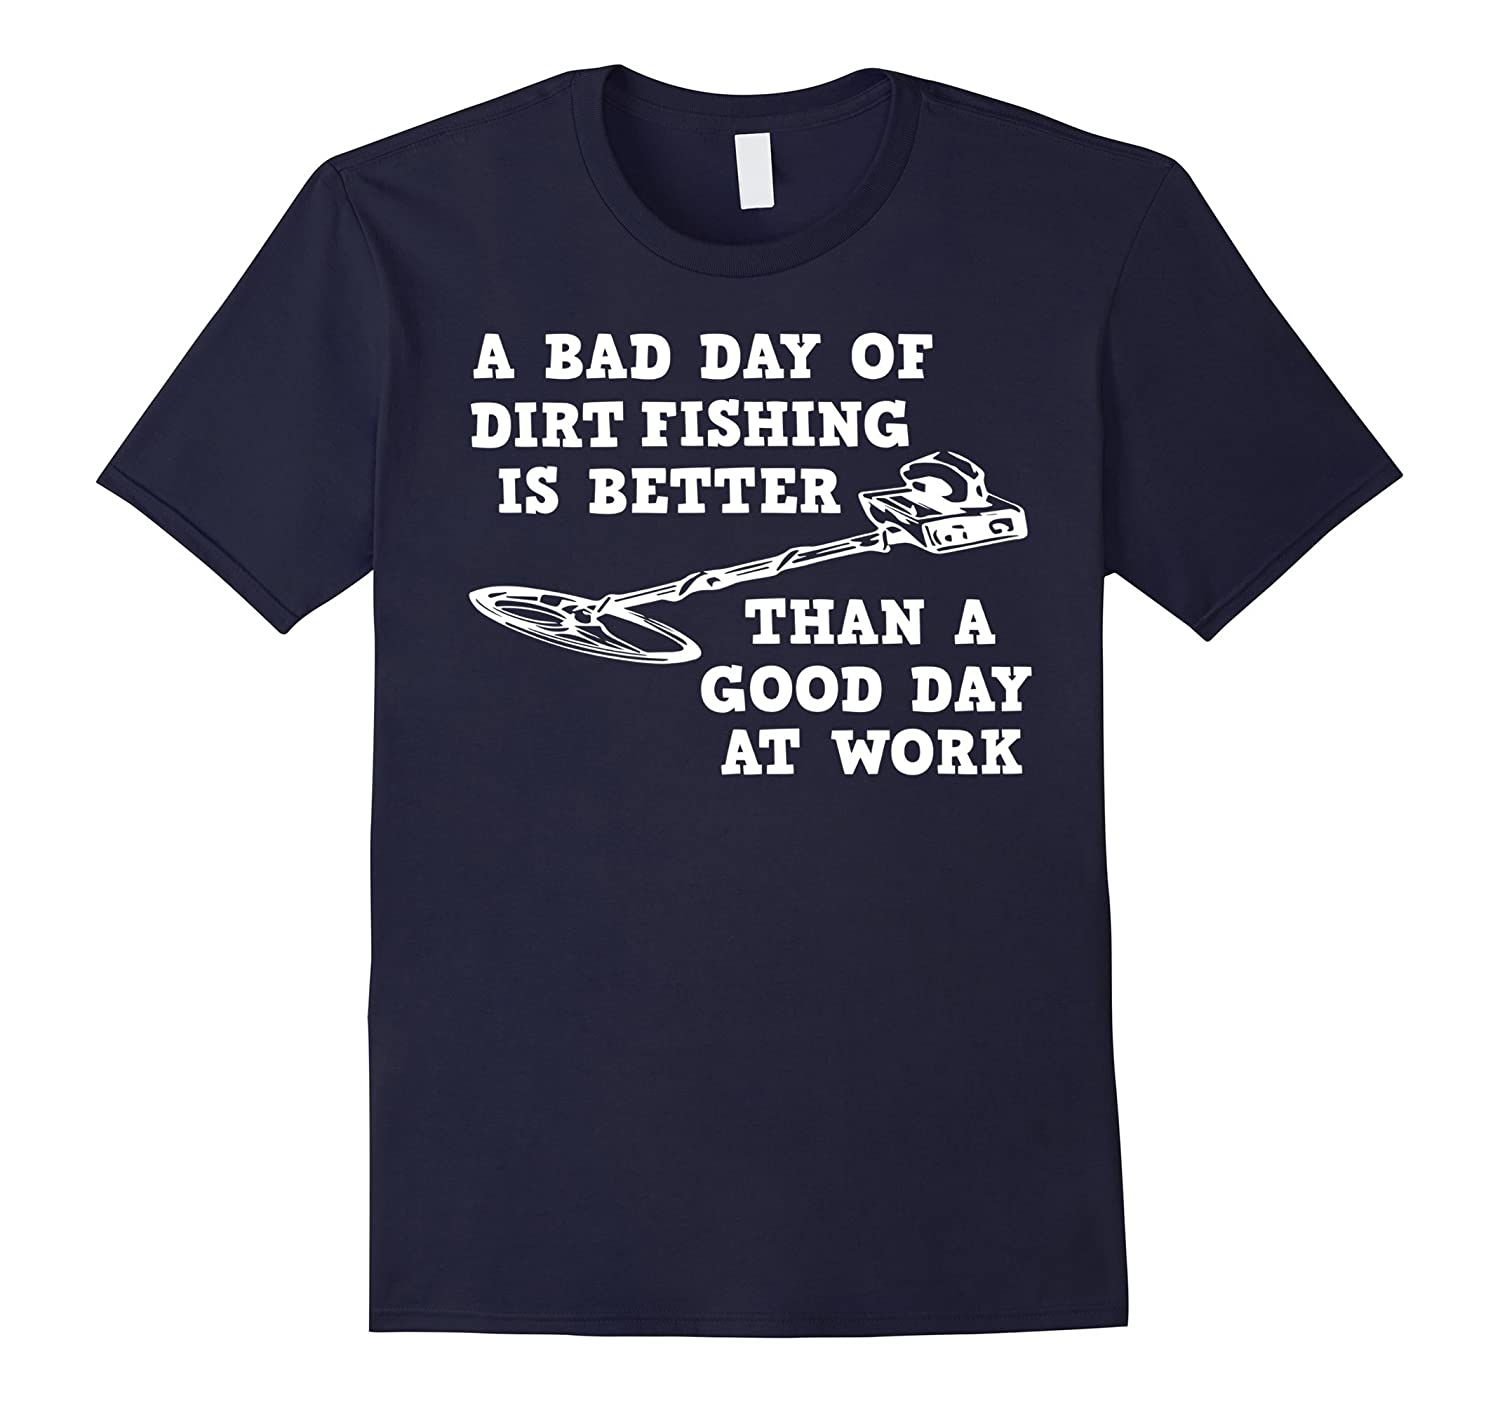 Bad day dirt fishing better than good day at work t shirt for Is it a good day to fish